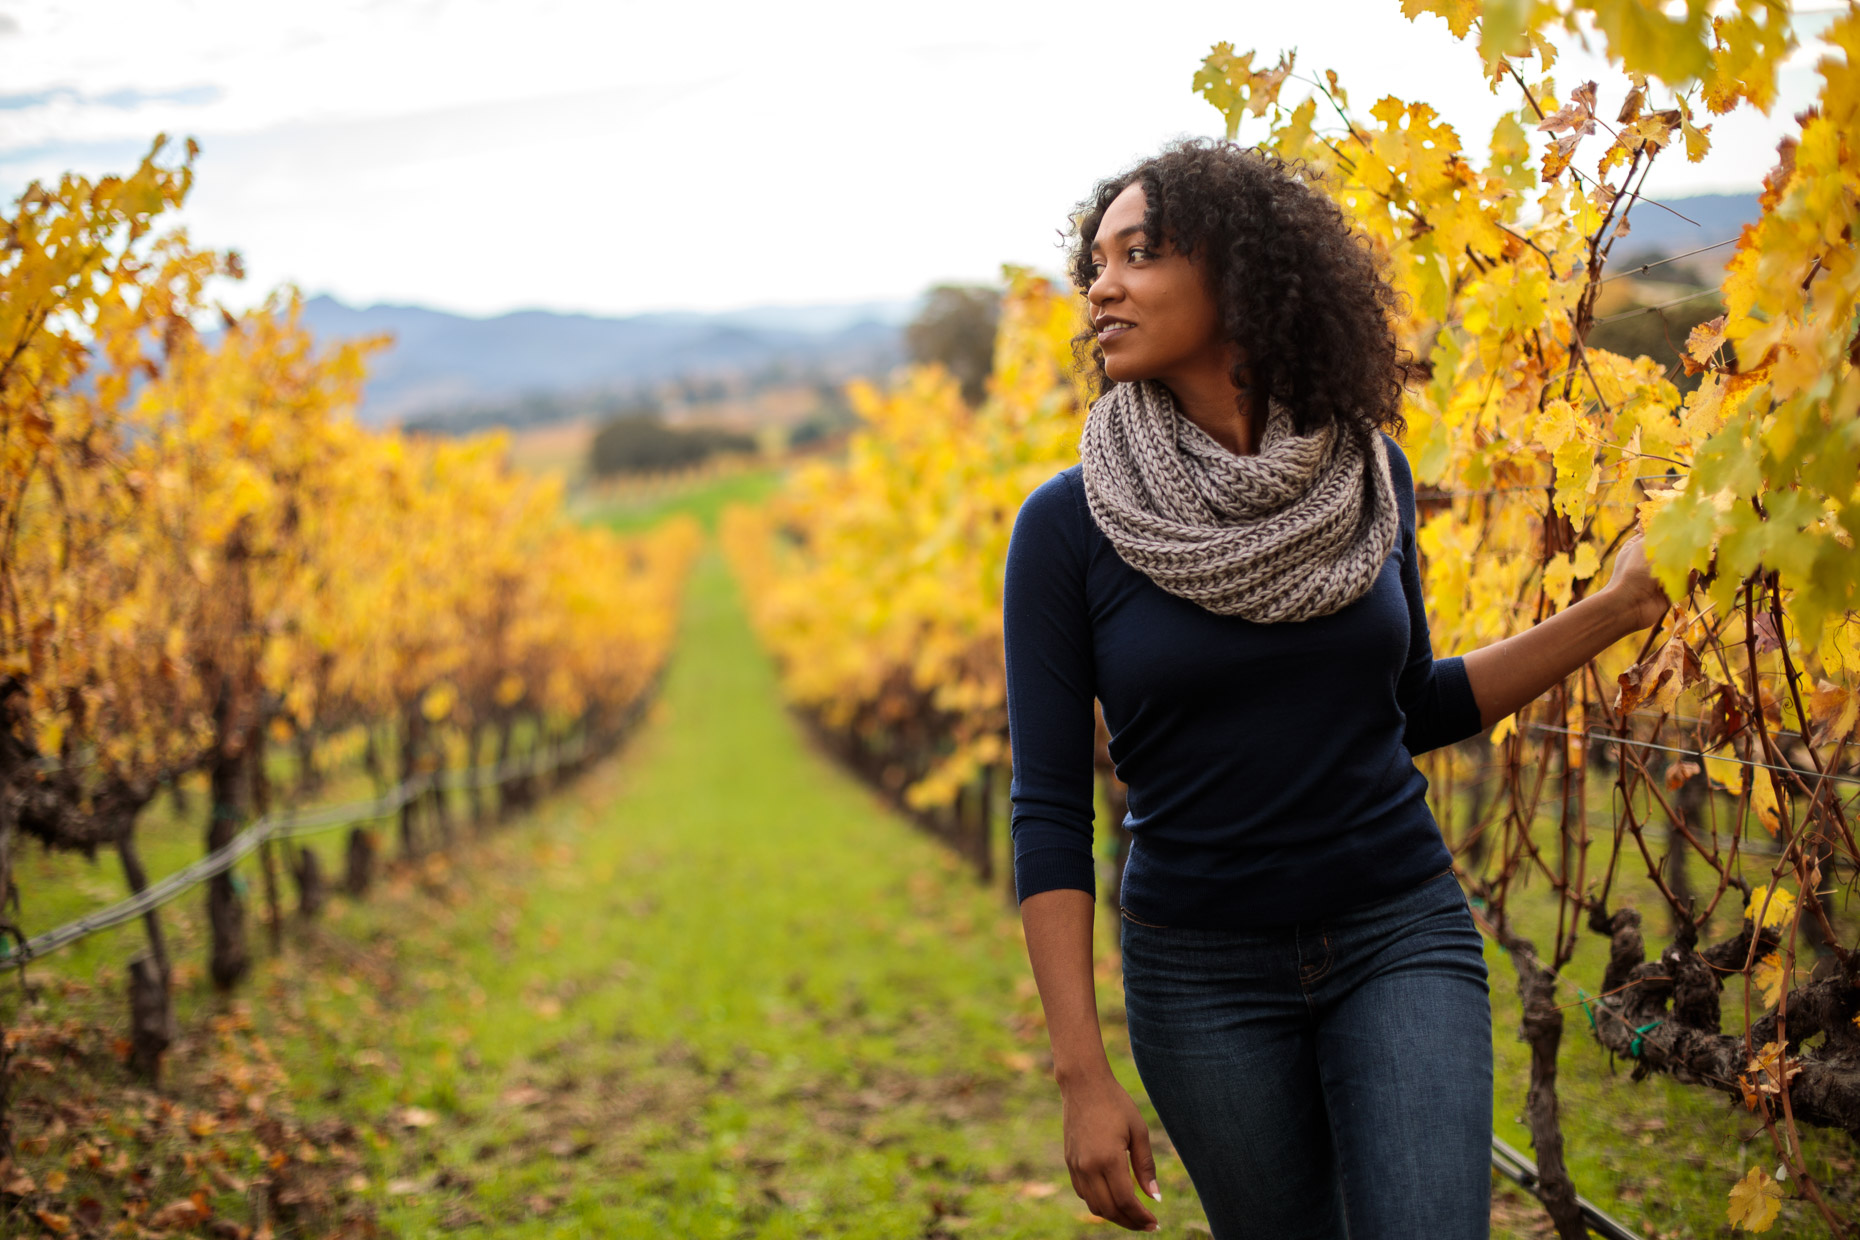 Woman walk through a vineyard